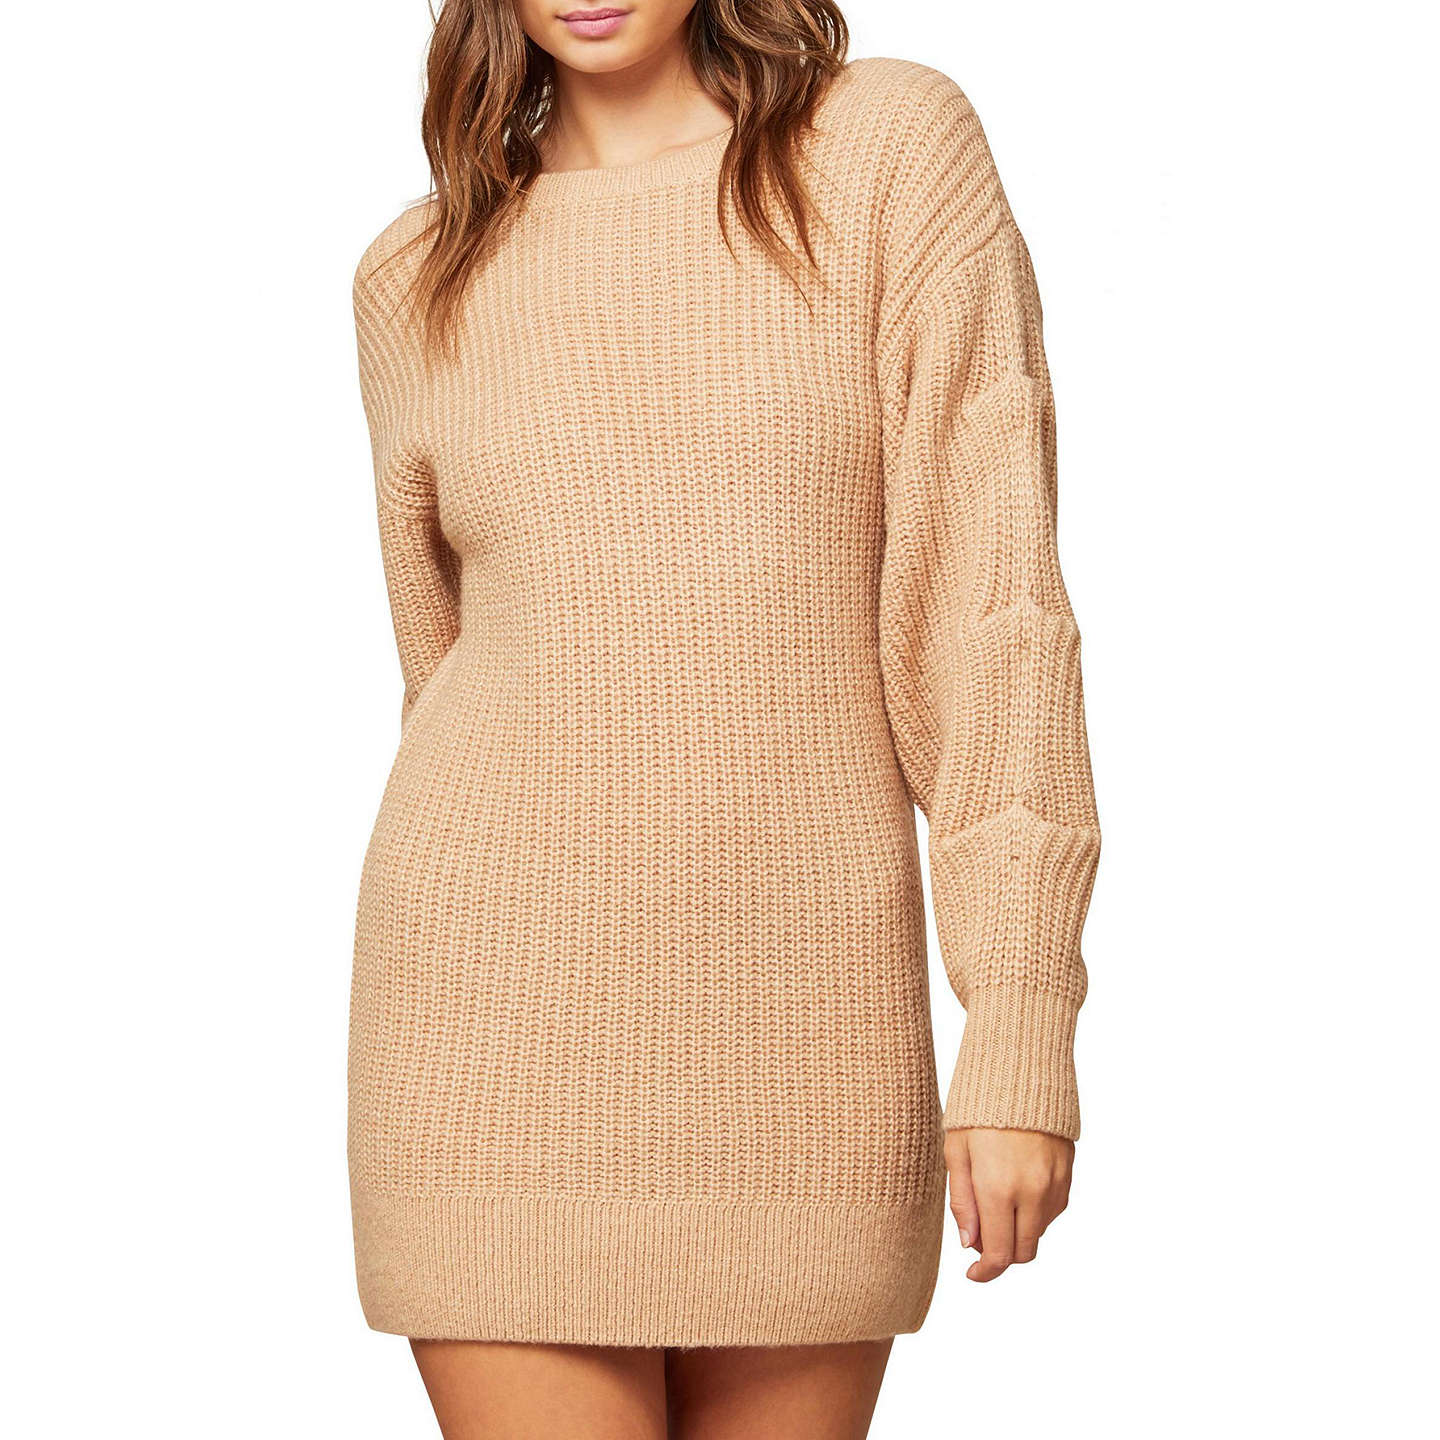 BuyMiss Selfridge Tuck Sleeve Tunic Jumper, Camel, 6 Online at johnlewis.com